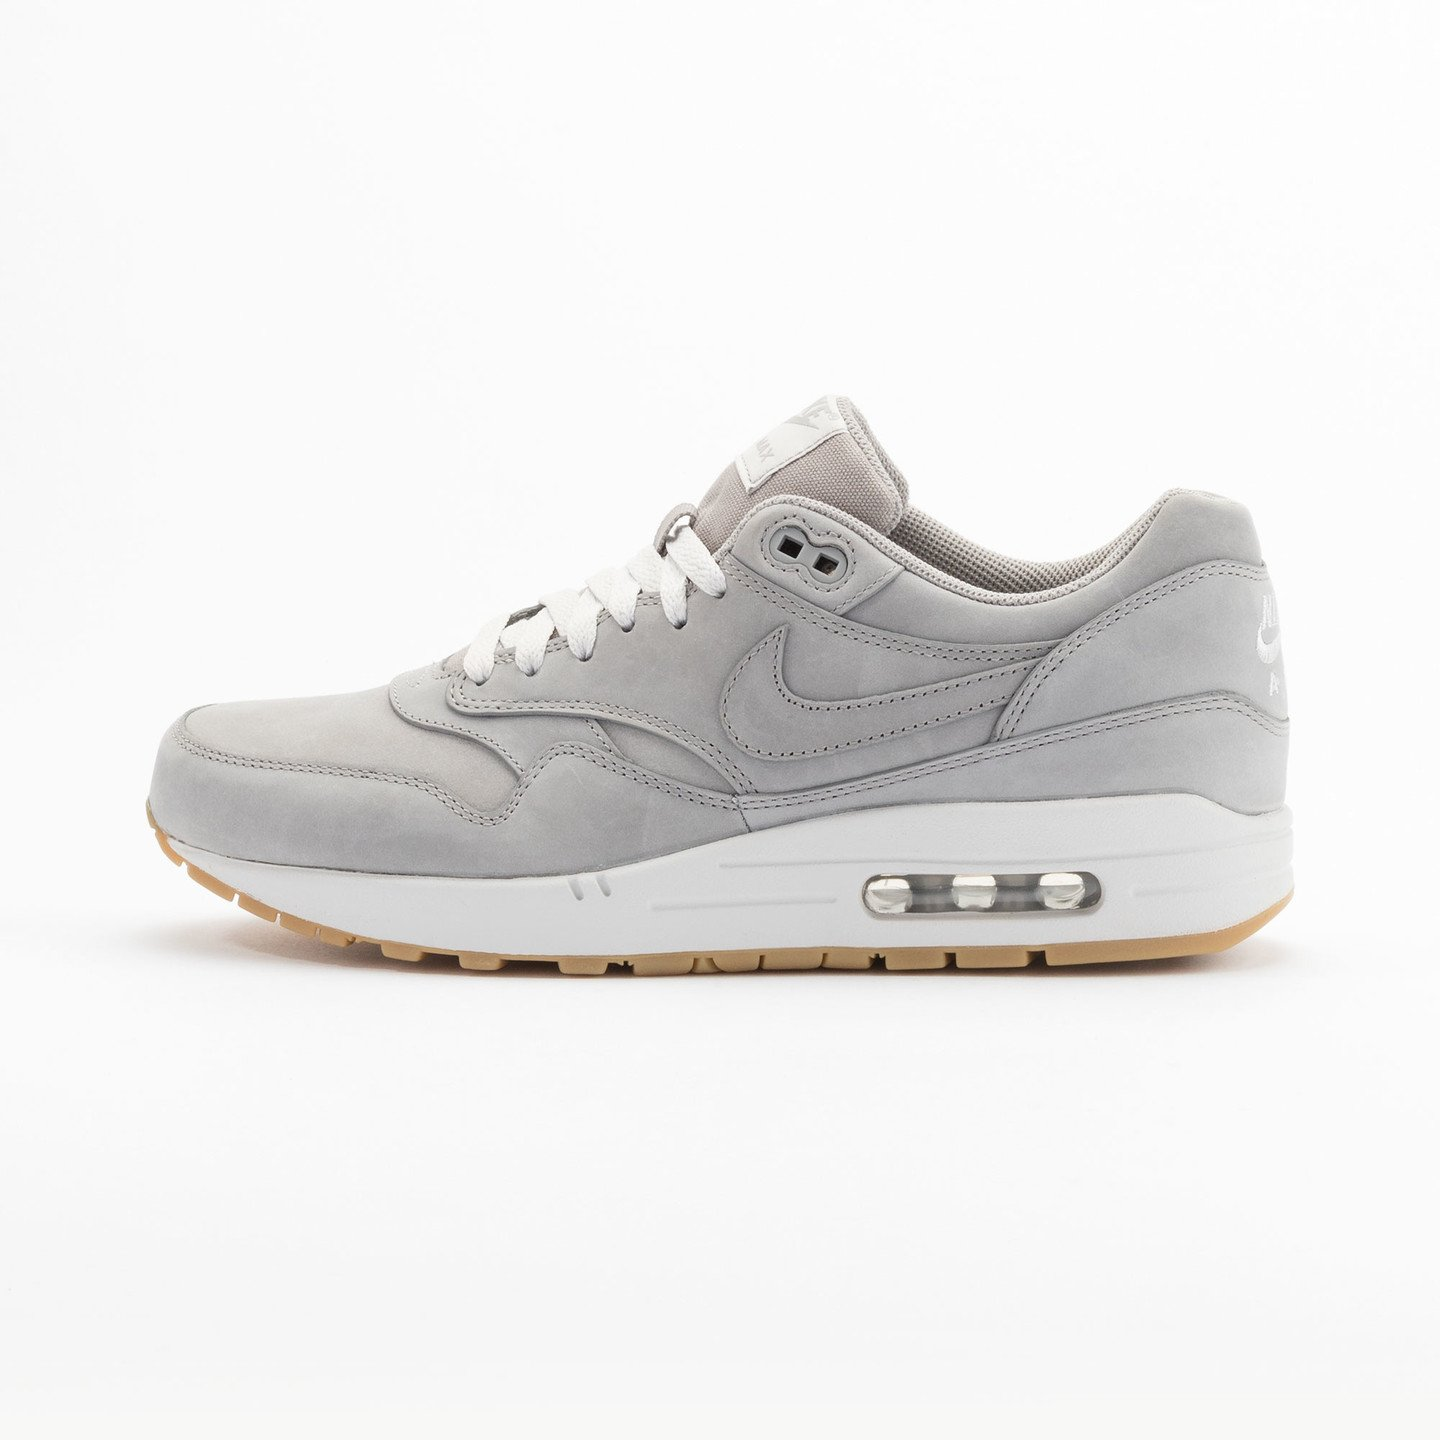 Nike Air Max Leather Premium Medium Grey 705282-005-44